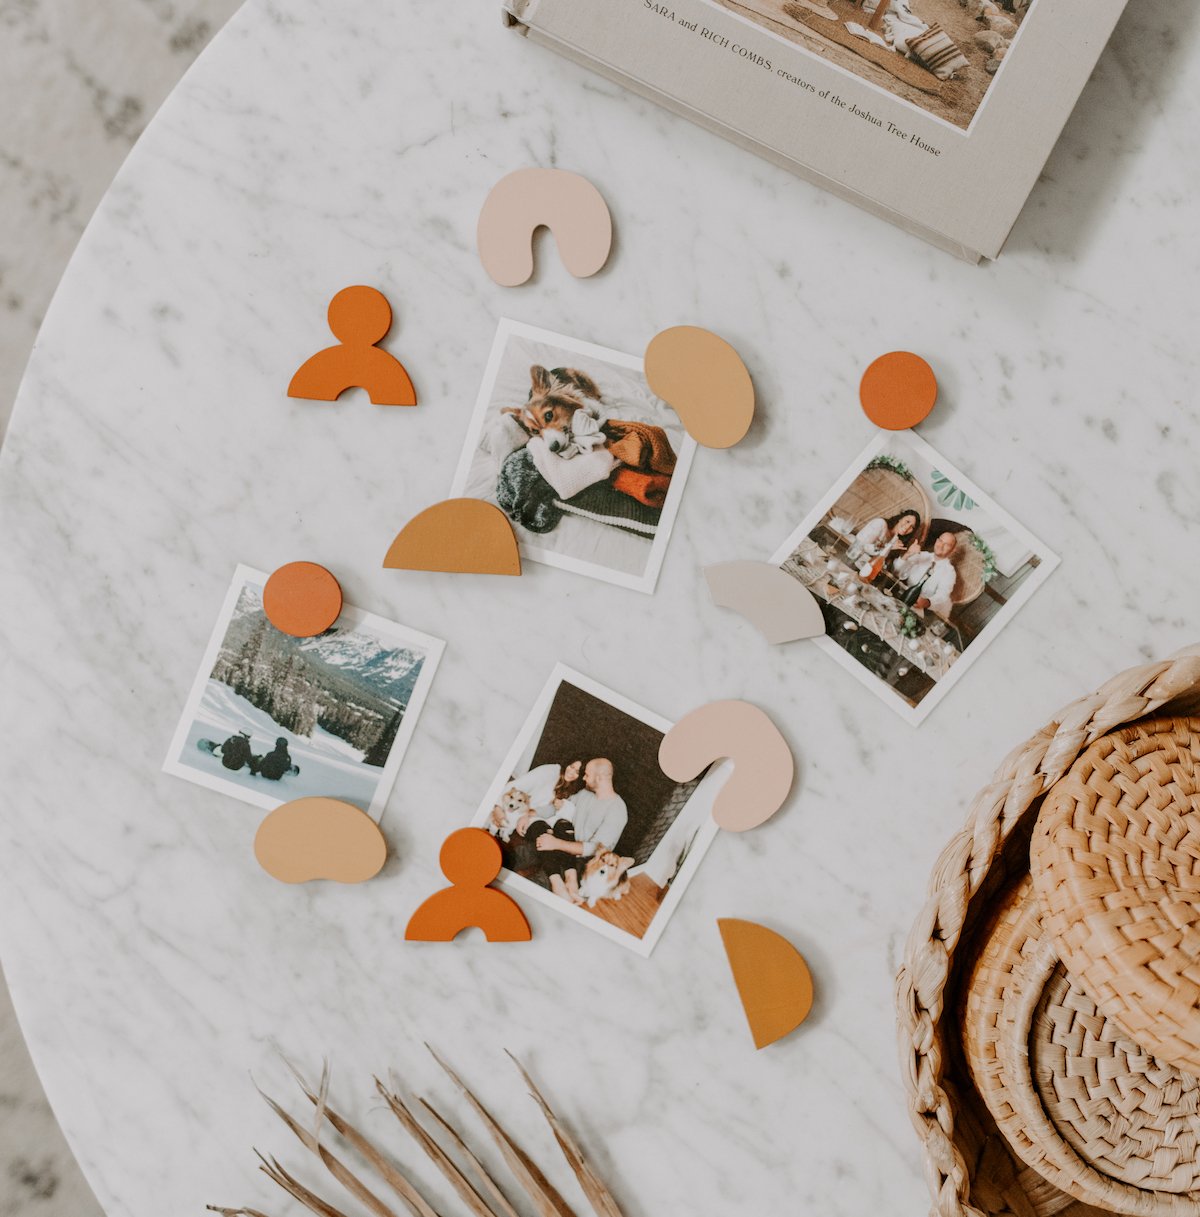 Square prints on table with cute handmade magnets